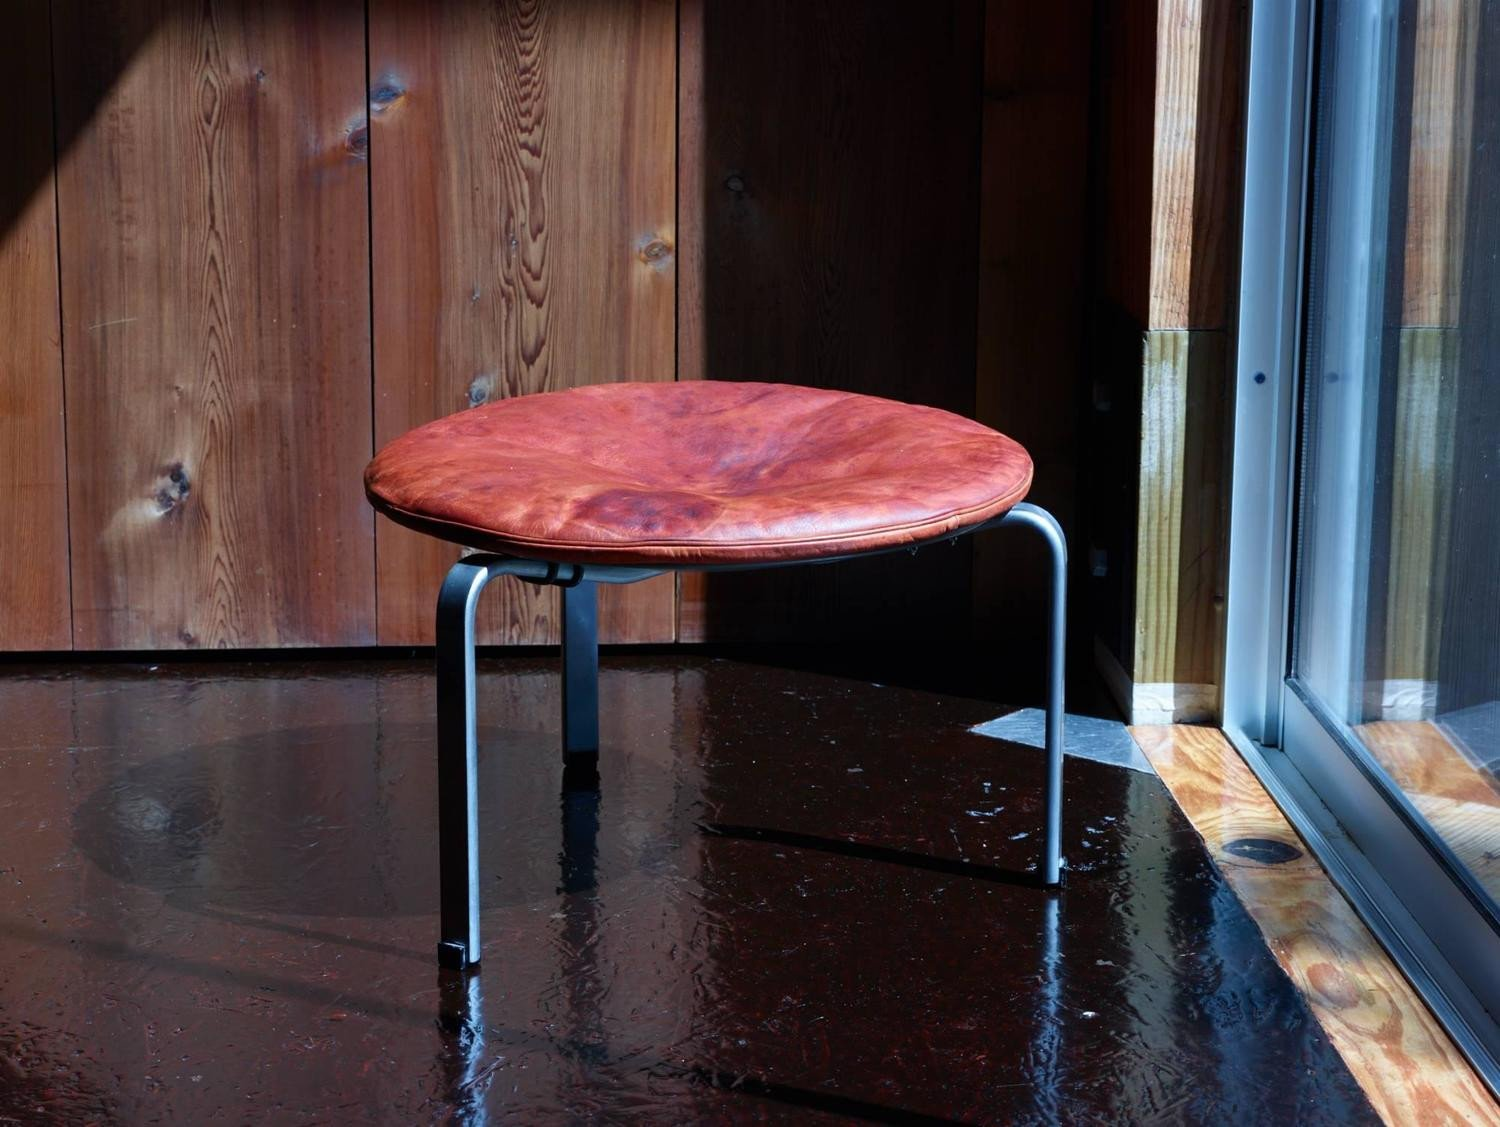 Poul Kjærholm PK 33 Stool for E. Kold Christensen in Original Condition circa 1959